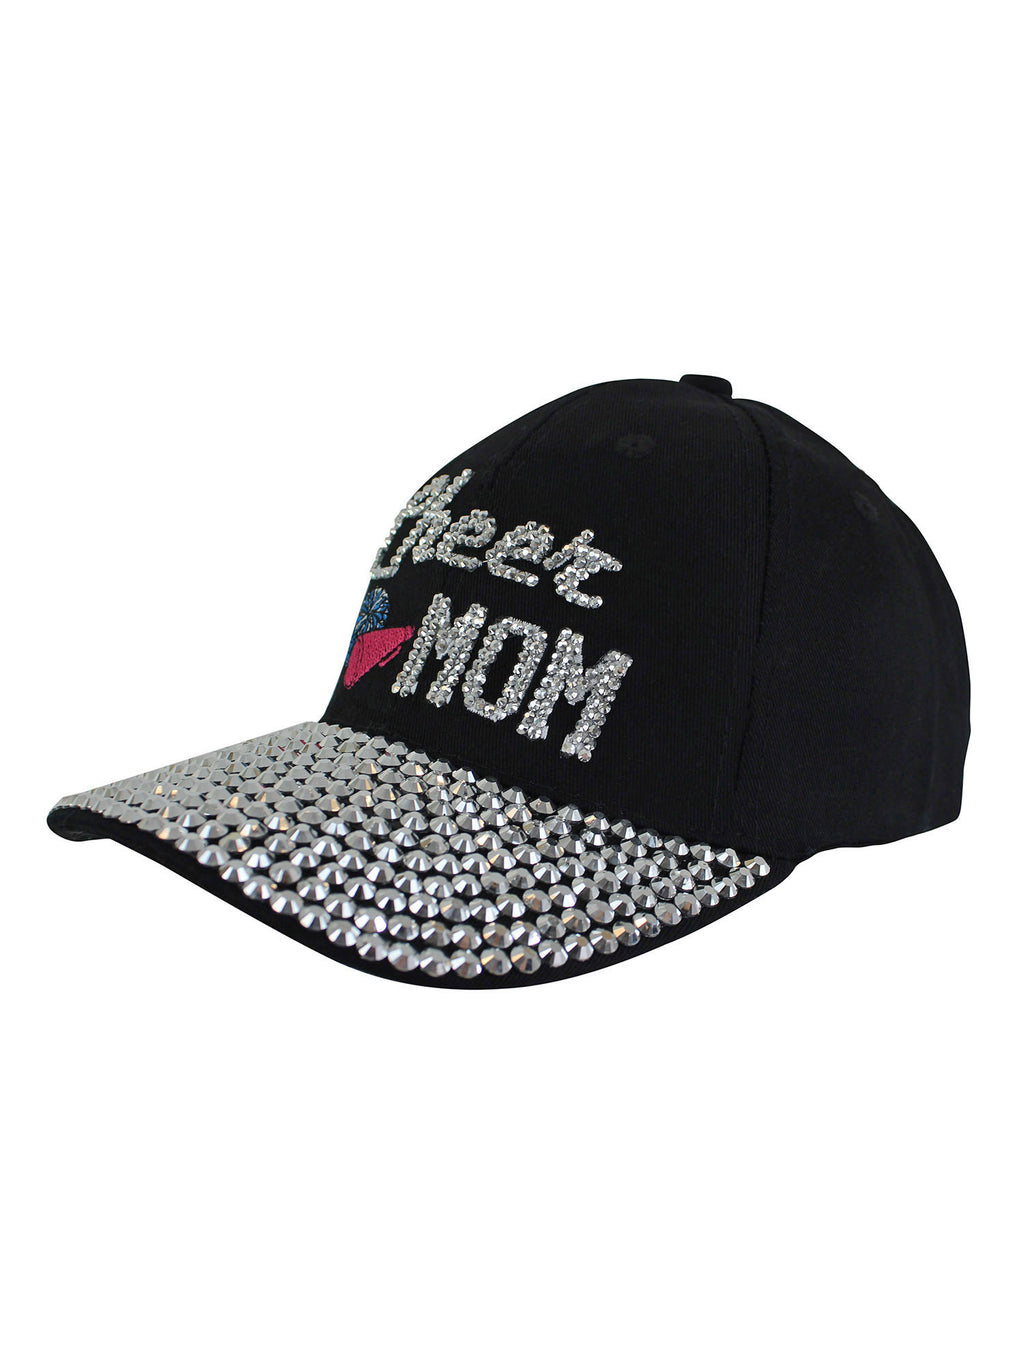 Cheer Mom Black Rhinestone Baseball Cap